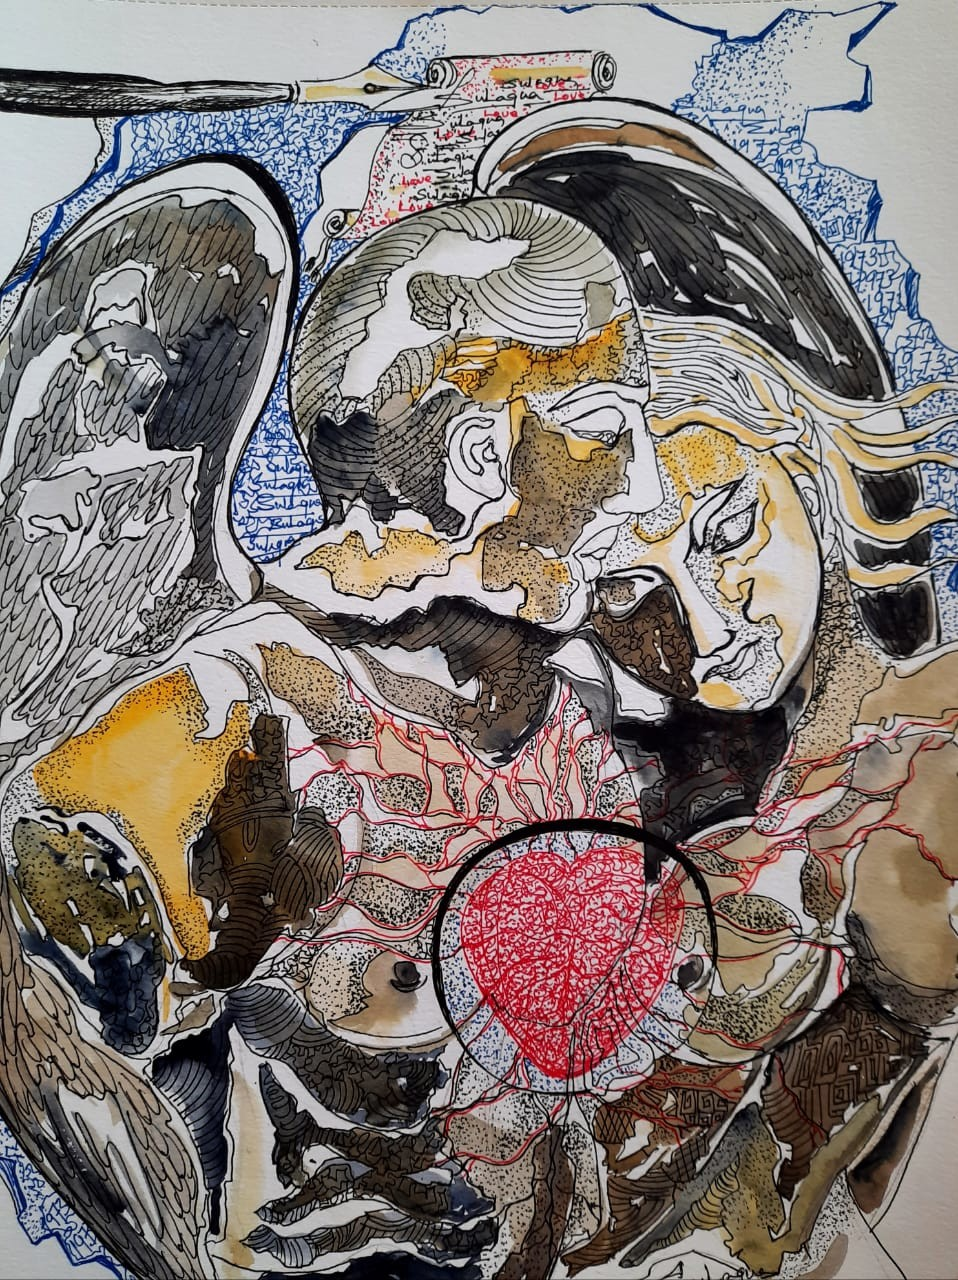 Bond of Love and Care by Sulagna Byapari, Expressionism Painting, Ink/ watercolour/acrylic on handmade paper, Tide color